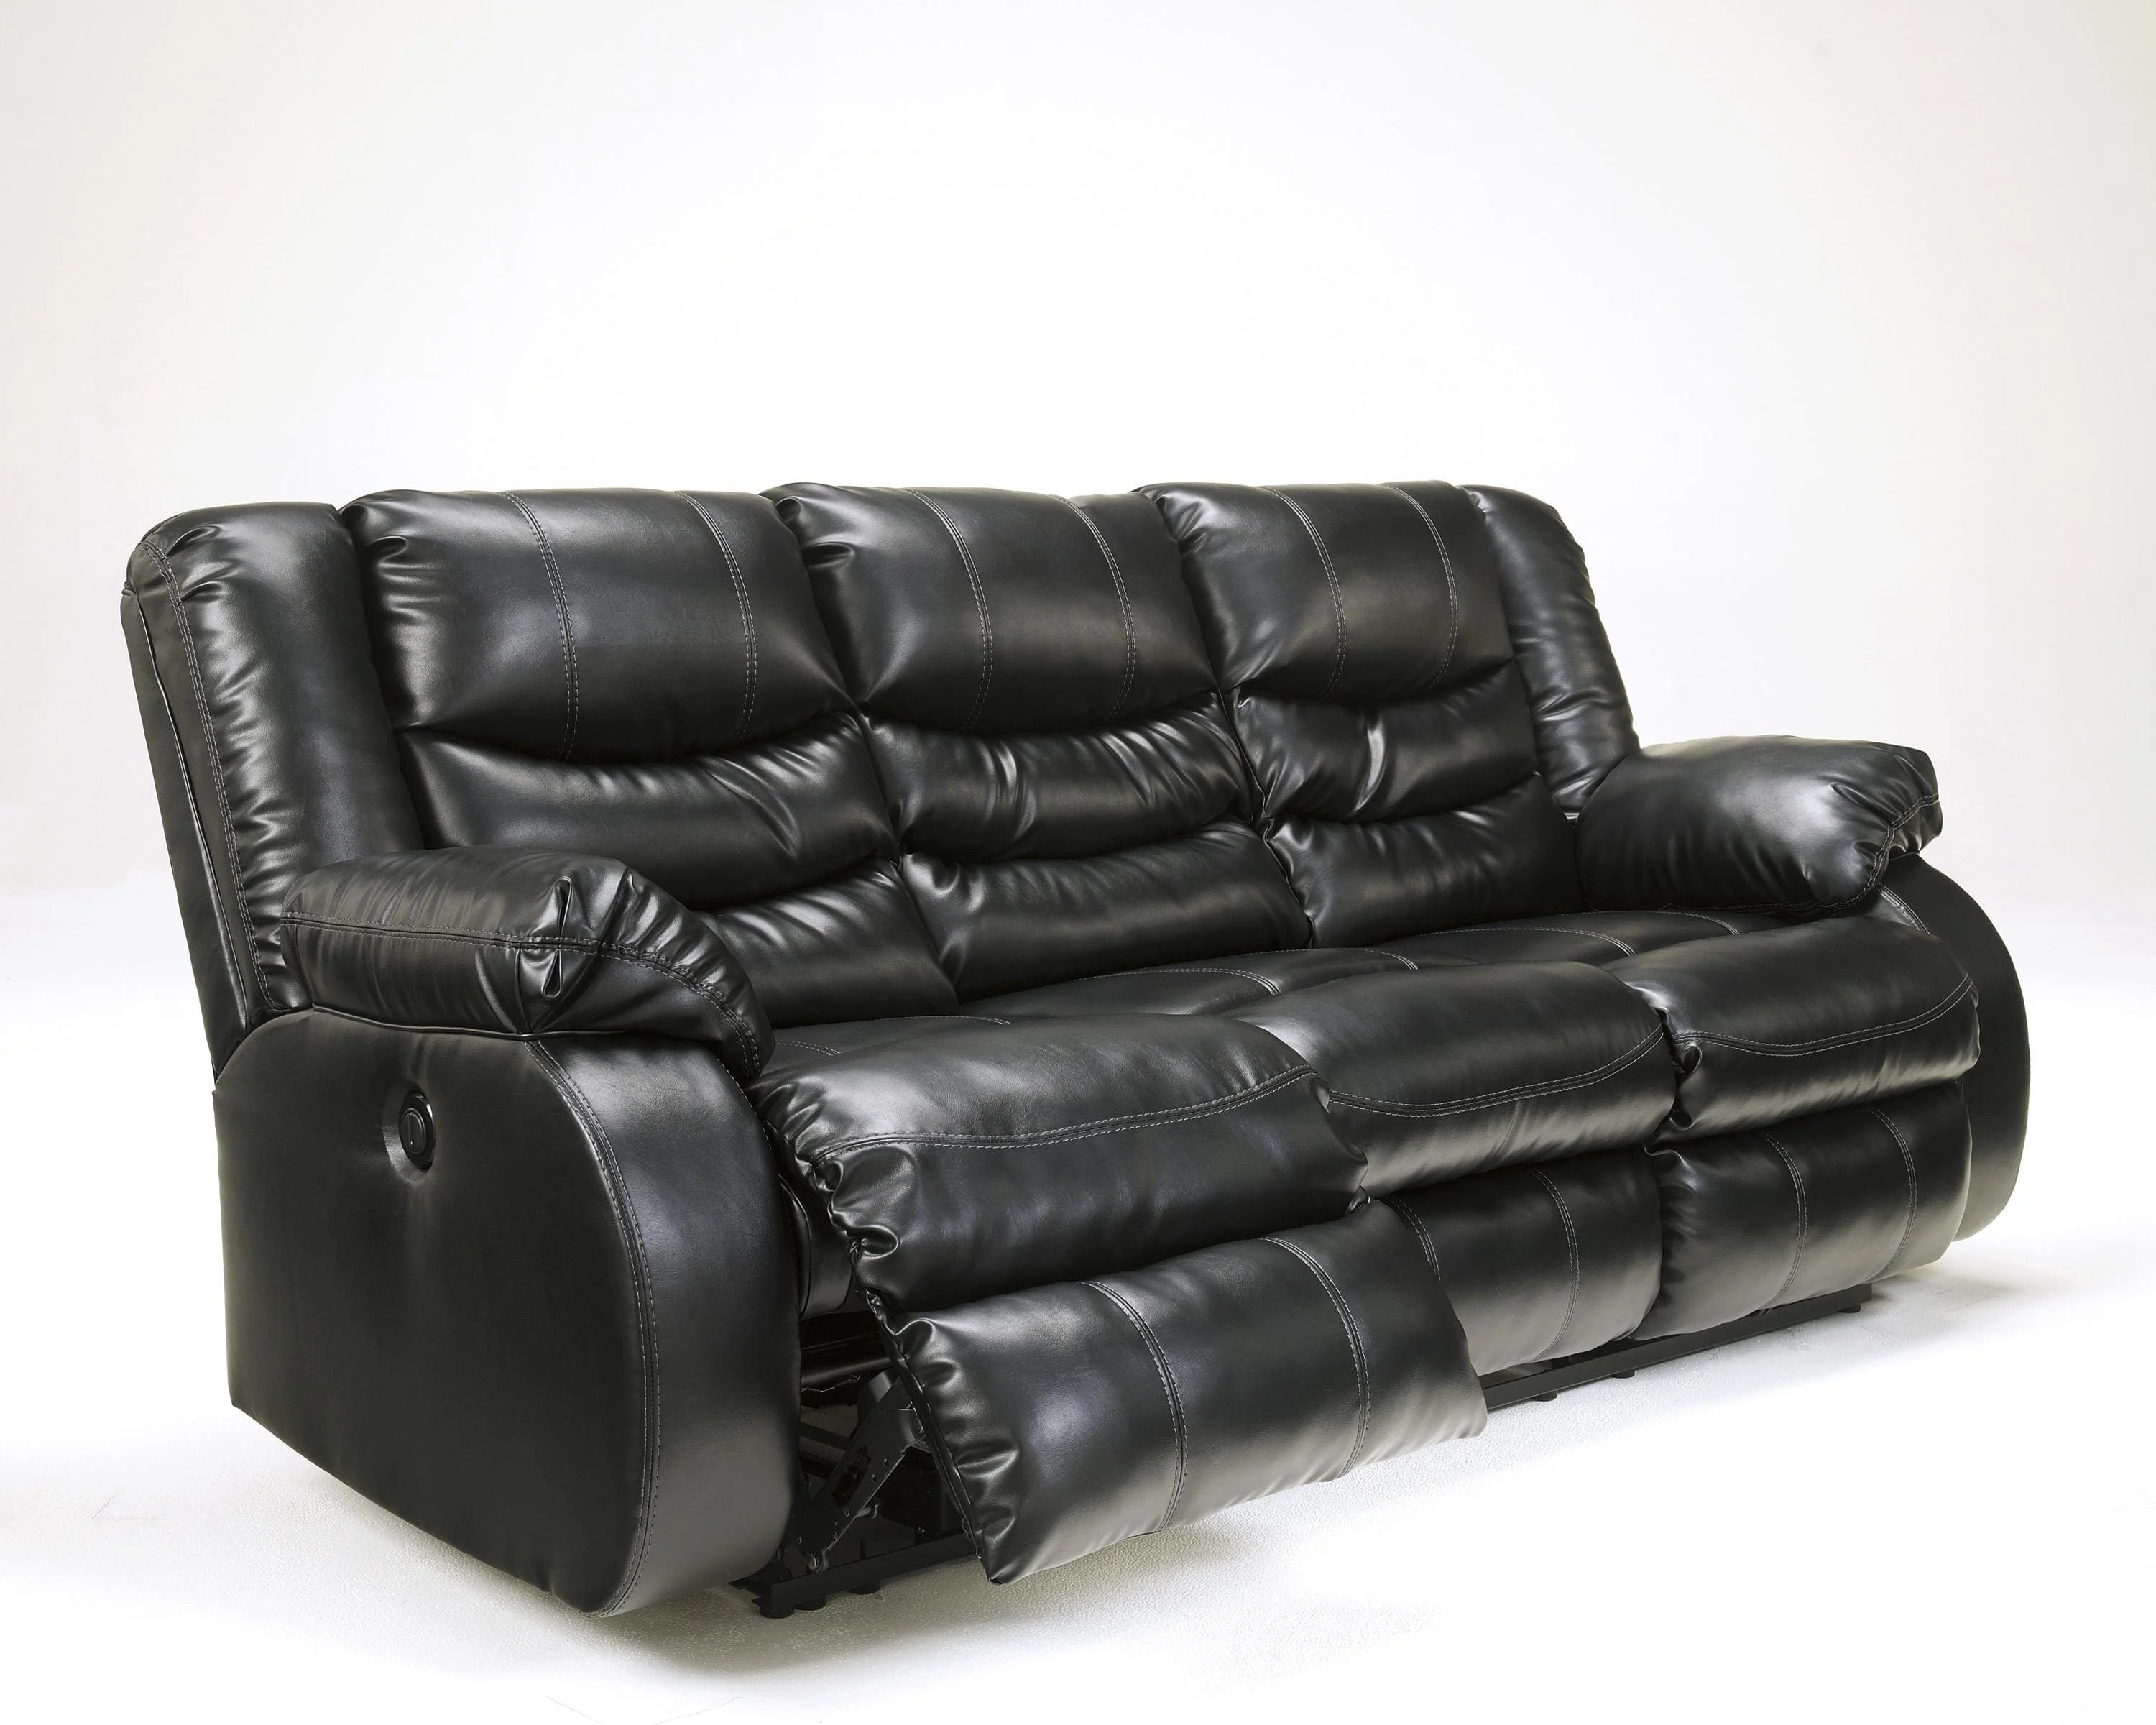 recliner sofa leather black mid century modern white reclining by ashley furniture